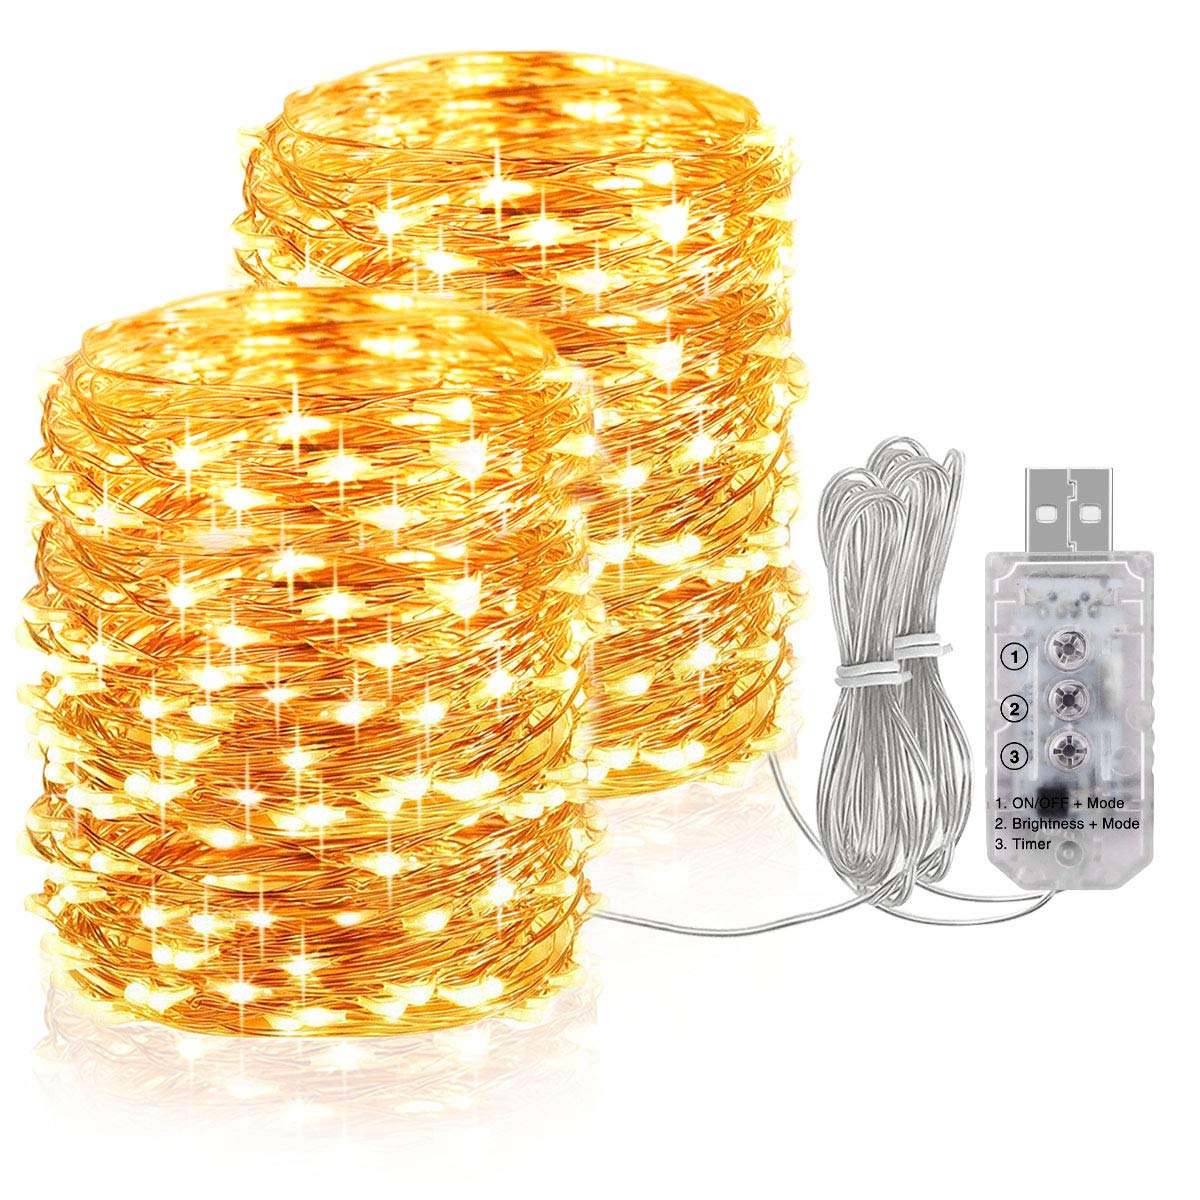 for Outdoor Garden Christmas Tree Wedding Decor USB Powered 5V Waterproof Copper Wire Twinkle Firefly Lights Onforu 66ft 200 LED String Lights 3000K Warm White 8 Modes Dimmable Fairy Lights